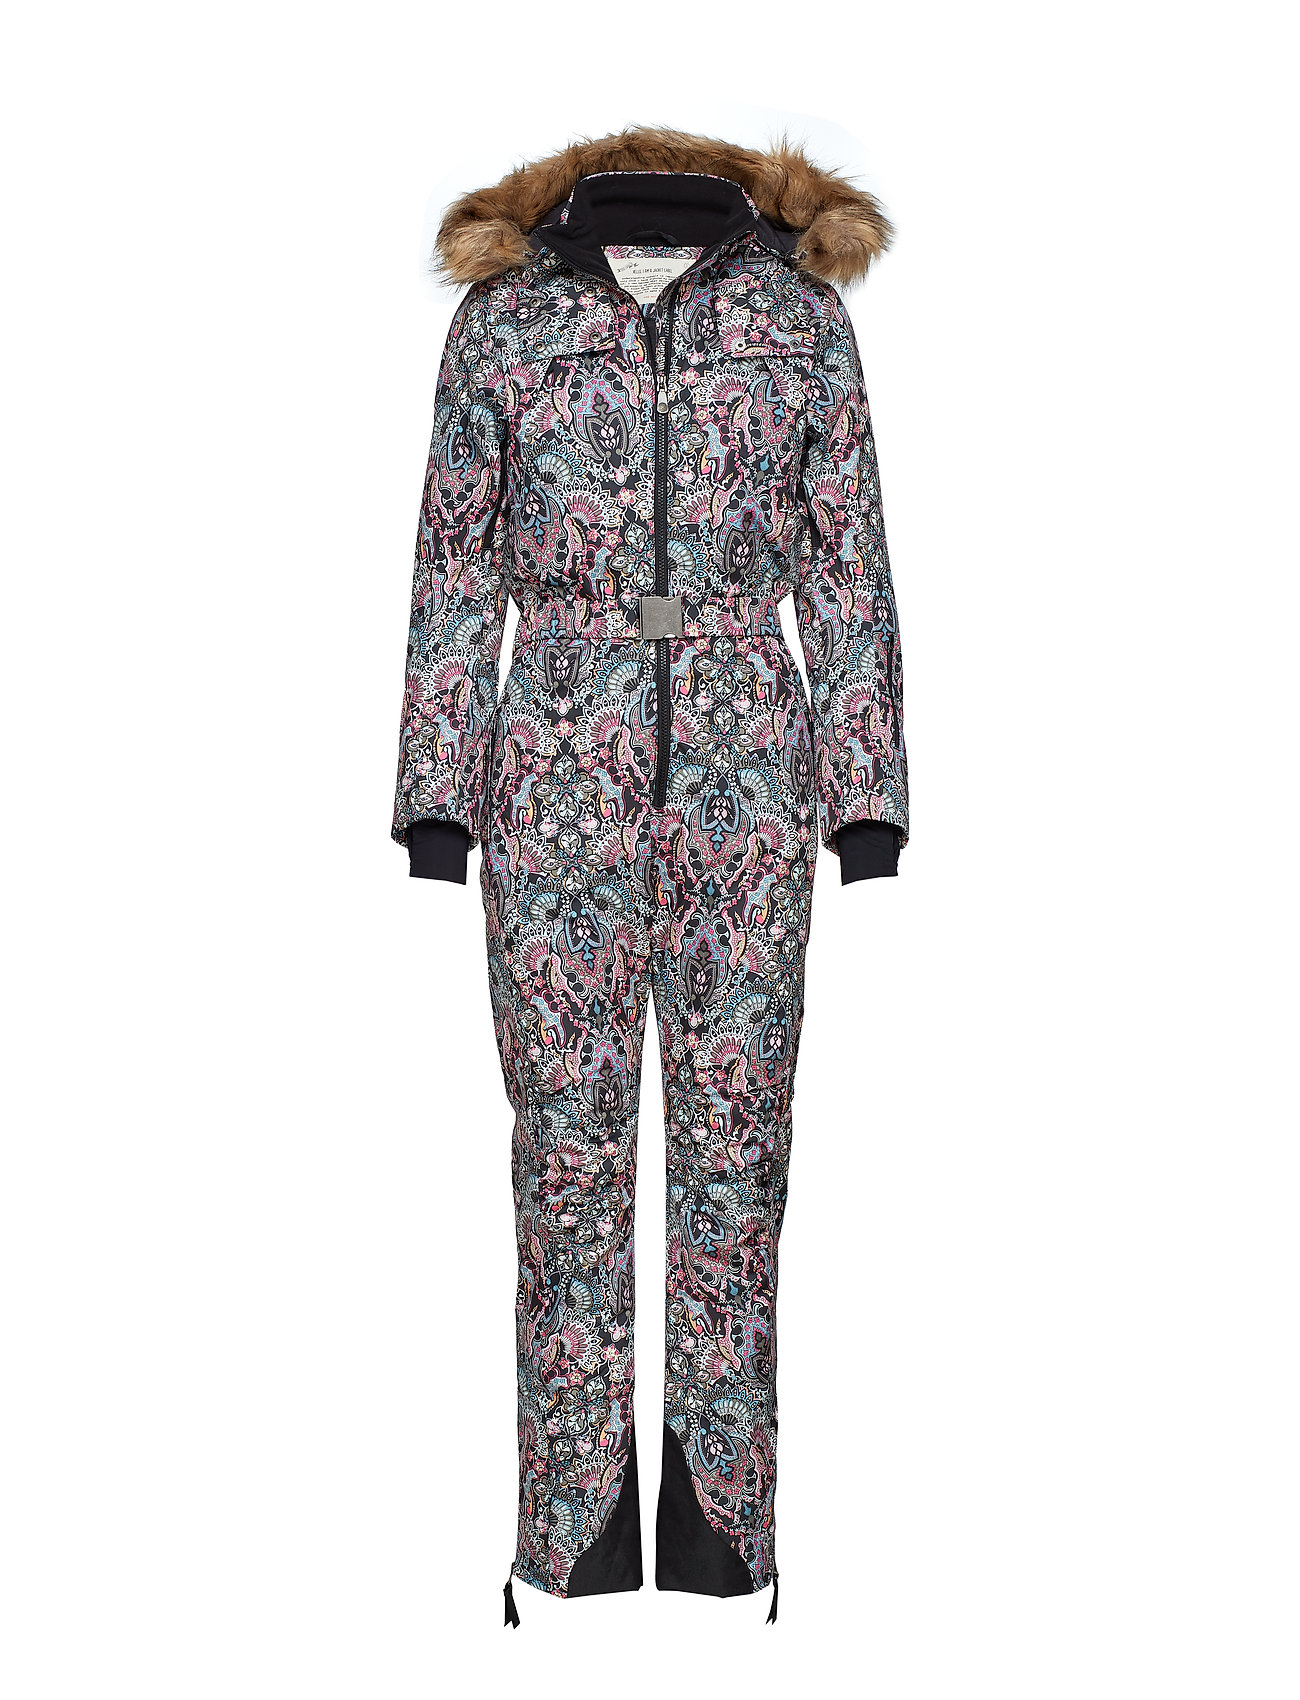 ODD MOLLY ACTIVE WEAR blow out ski suit